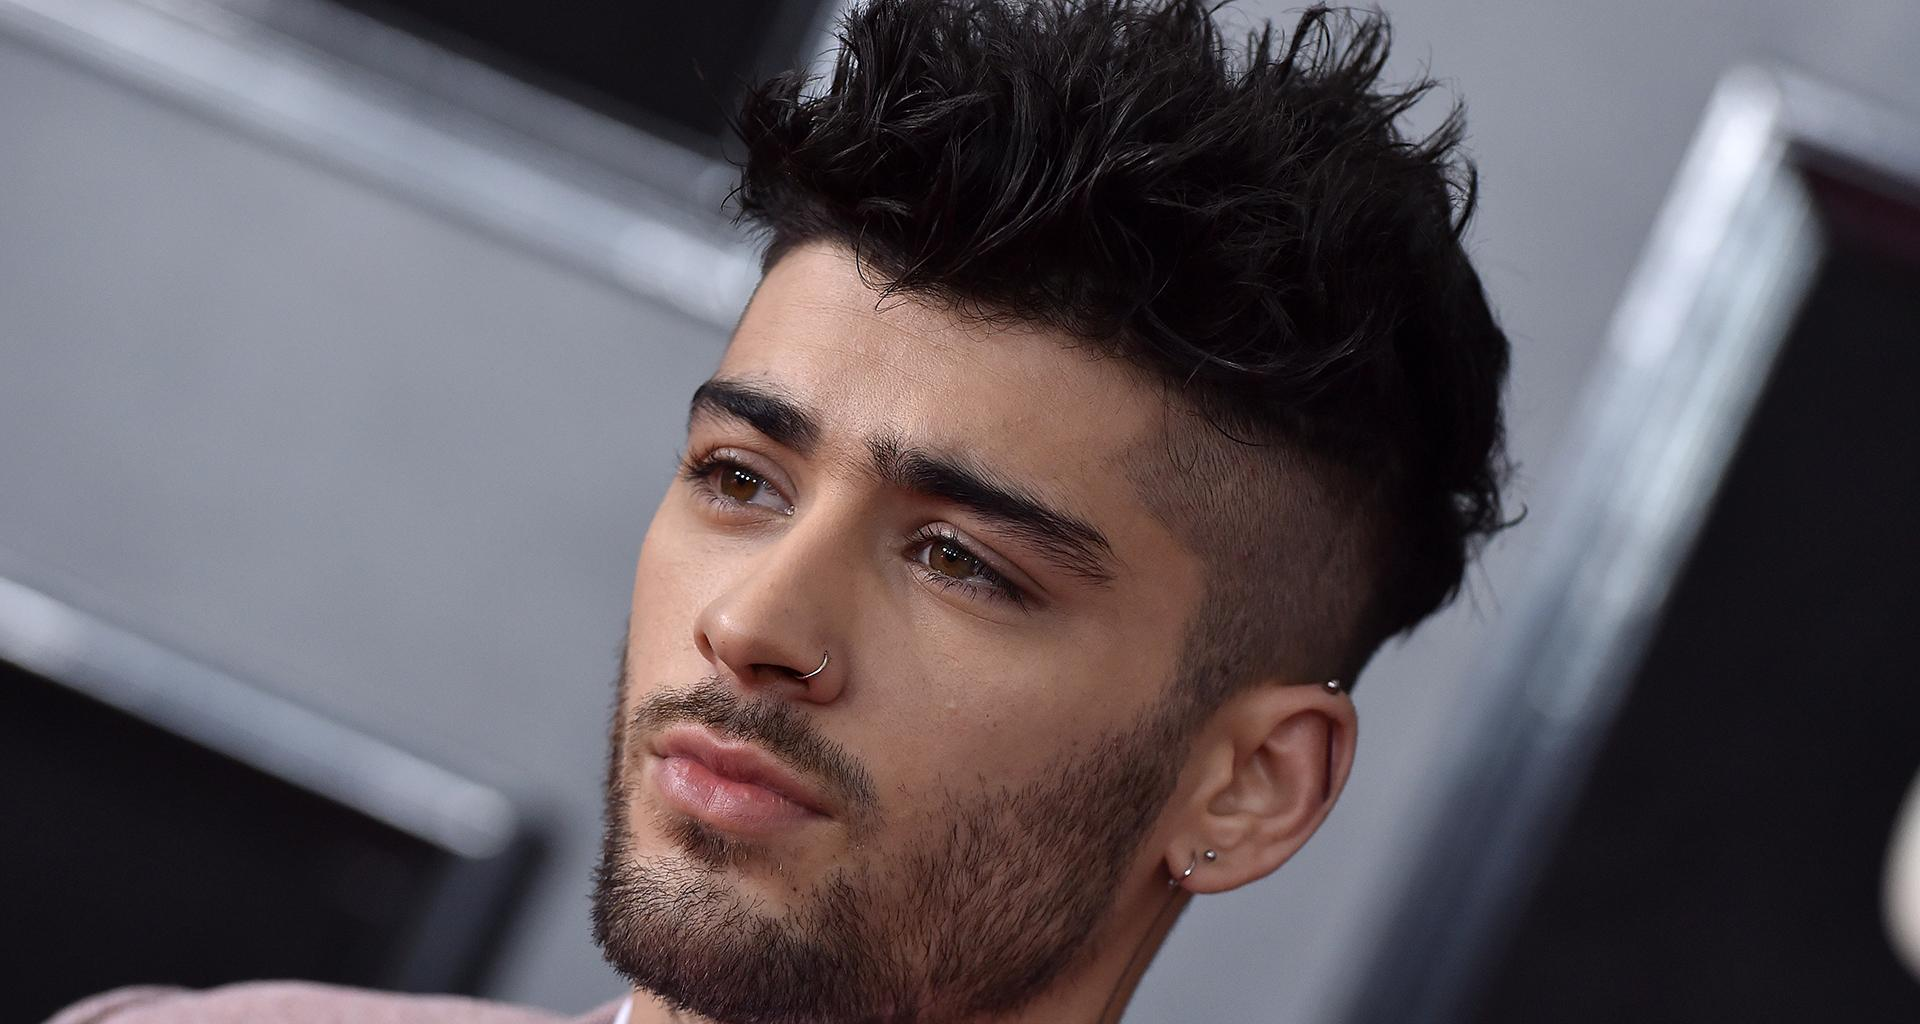 Zayn Malik Calls Himself 'A 'S**t Person' And Fans Are Very Worried - Check Out His Response To The Concern!